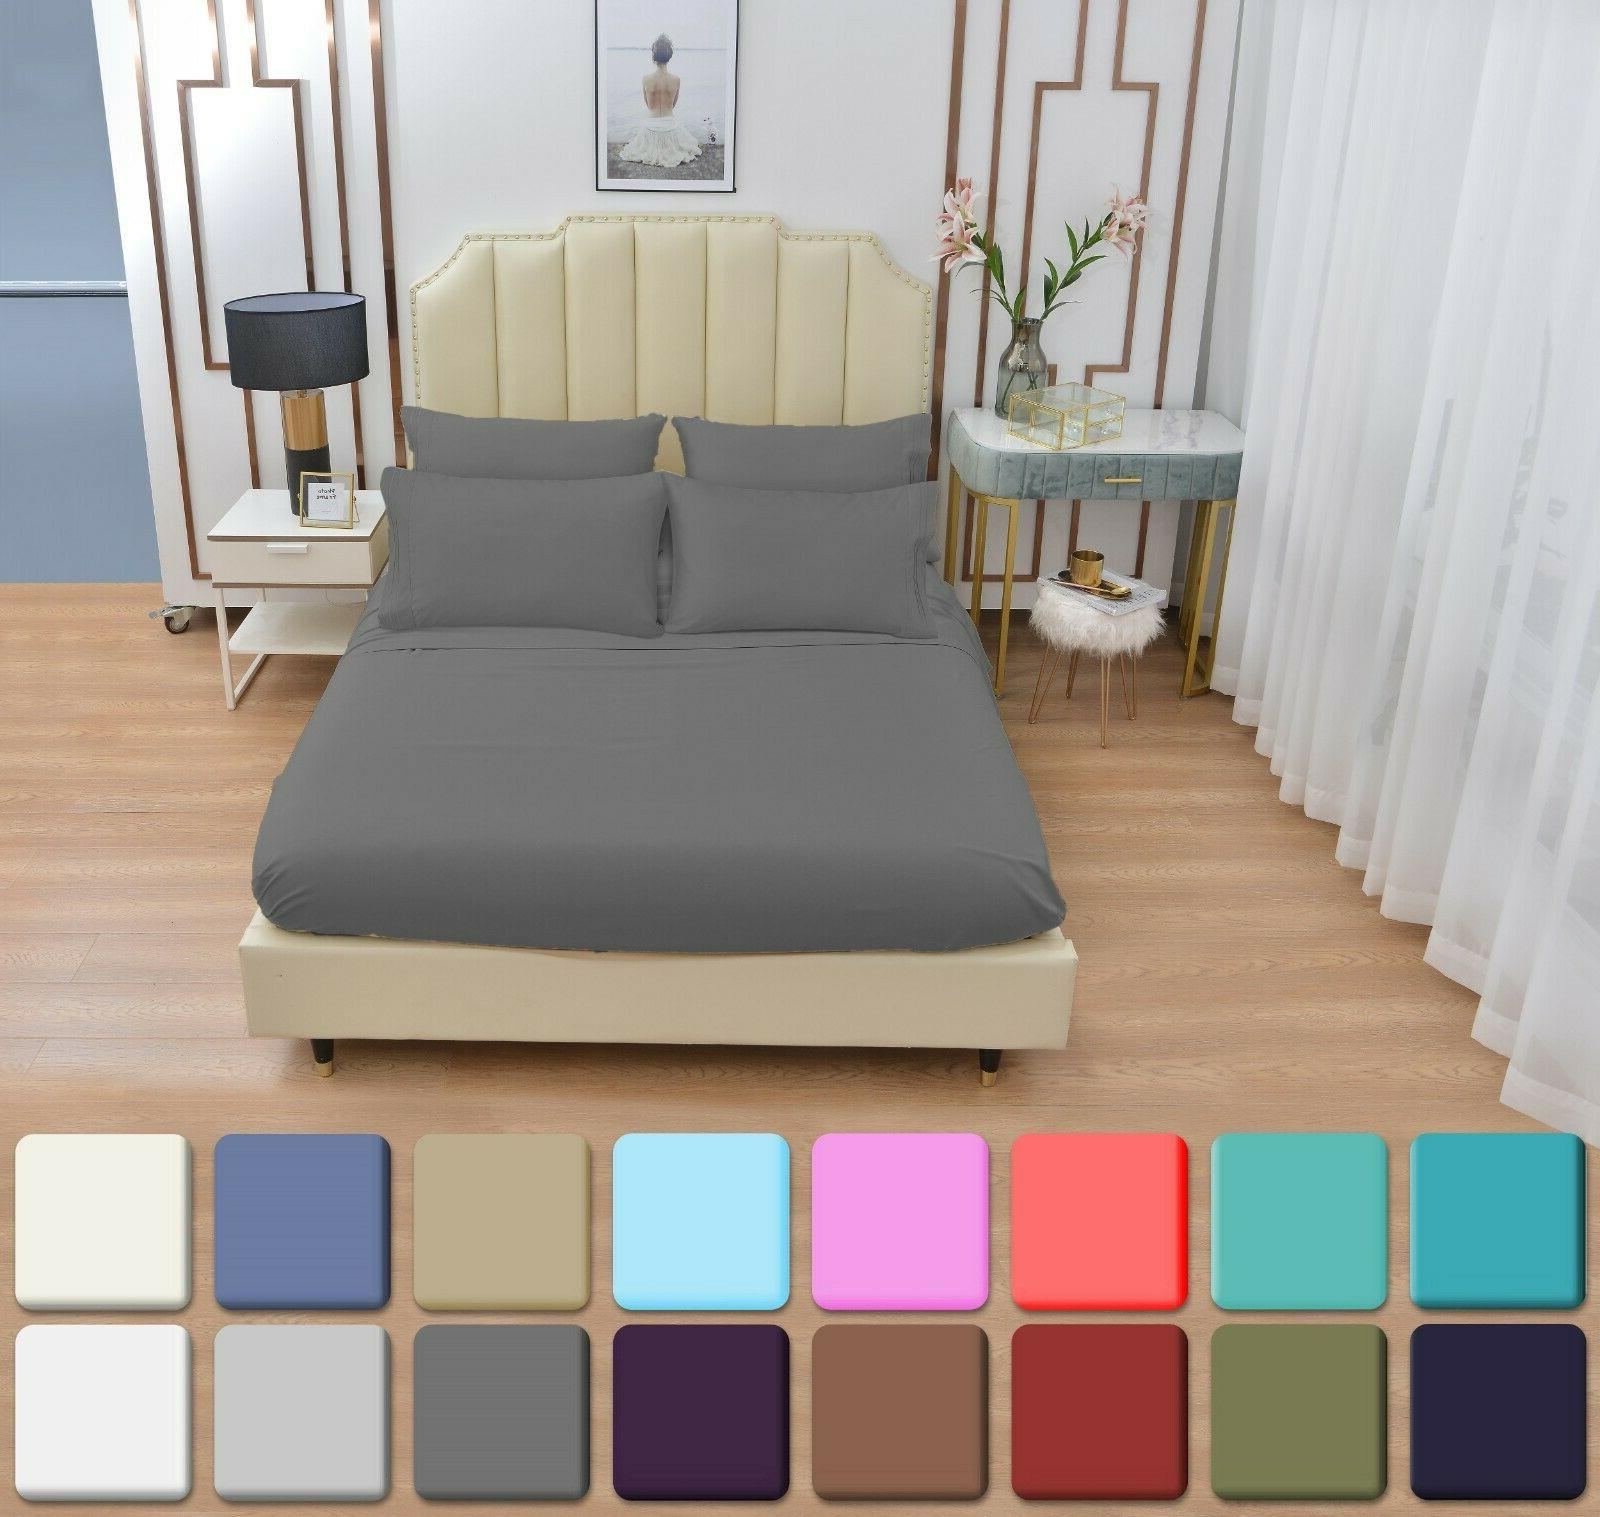 6 Pc Set Bamboo Sheets Queen Twin Size